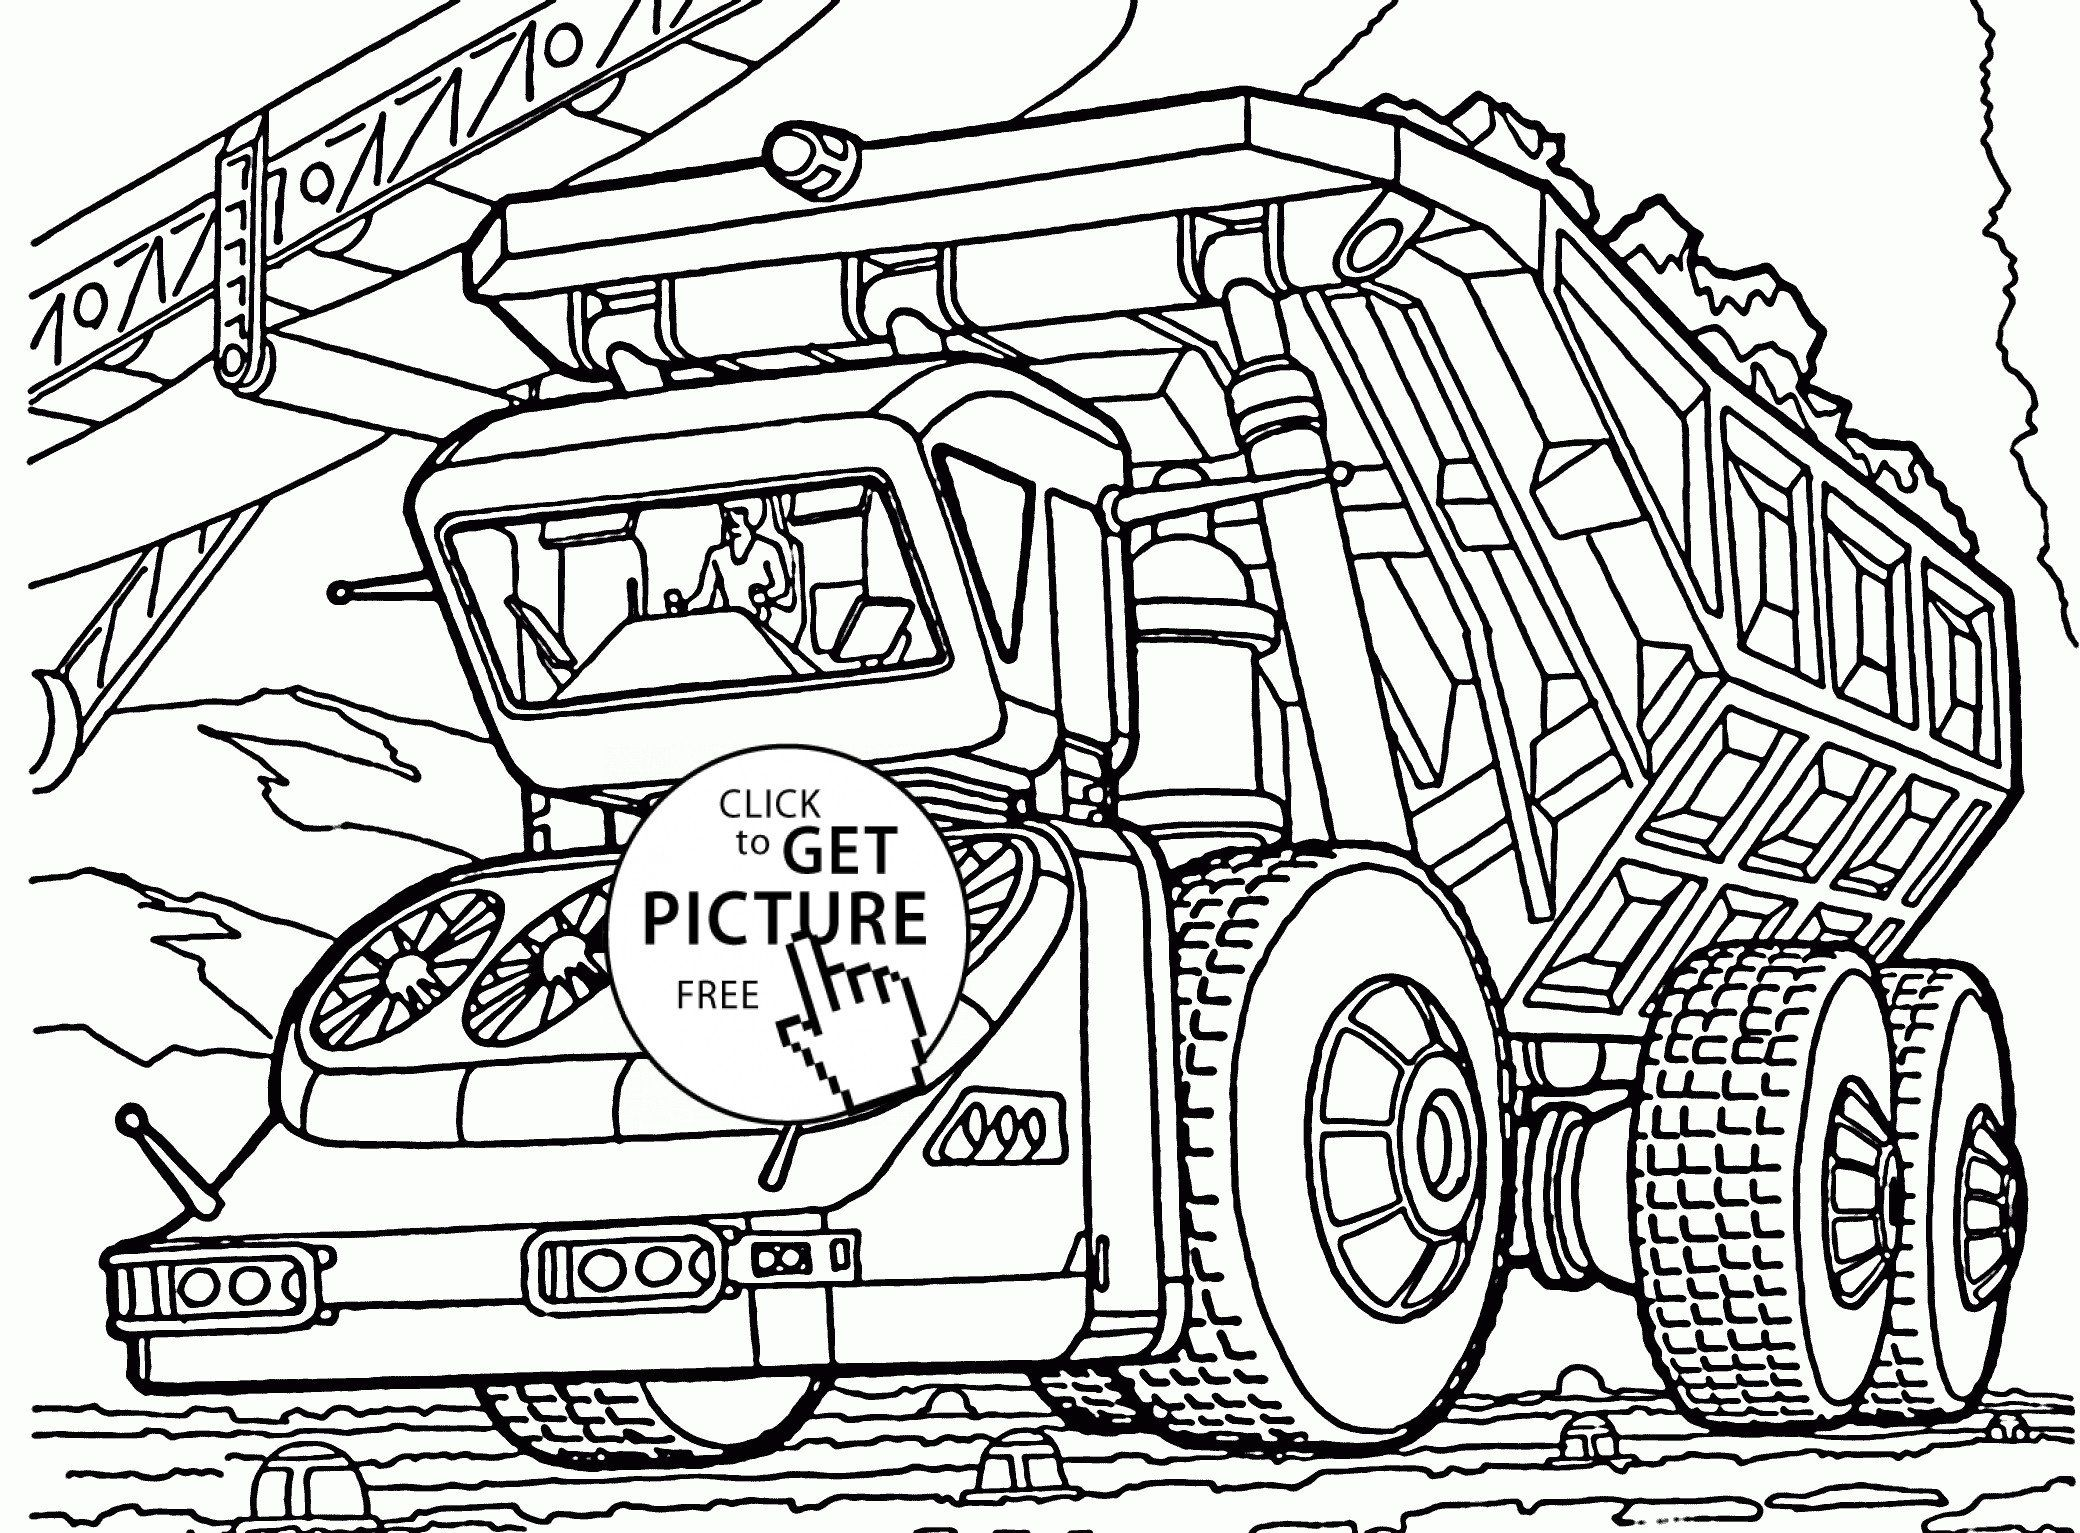 Garbage Truck Coloring Page Luxury Military Truck Coloring Pages At Getdrawings Truck Coloring Pages Tractor Coloring Pages Monster Truck Coloring Pages